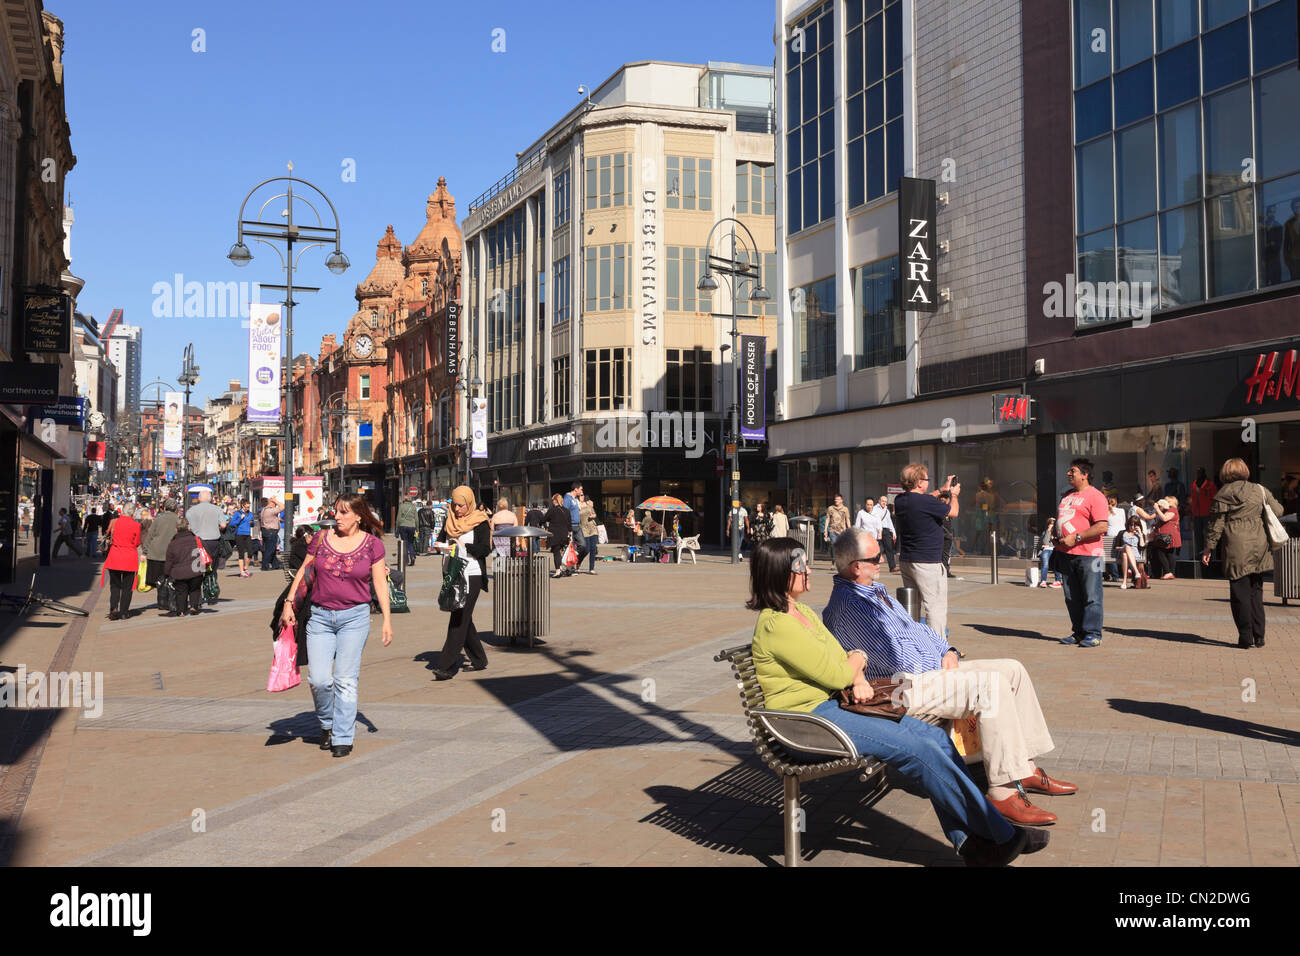 Busy pedestrian main high street scene with people shopping in city centre on Briggate, Leeds, West Yorkshire, England, - Stock Image